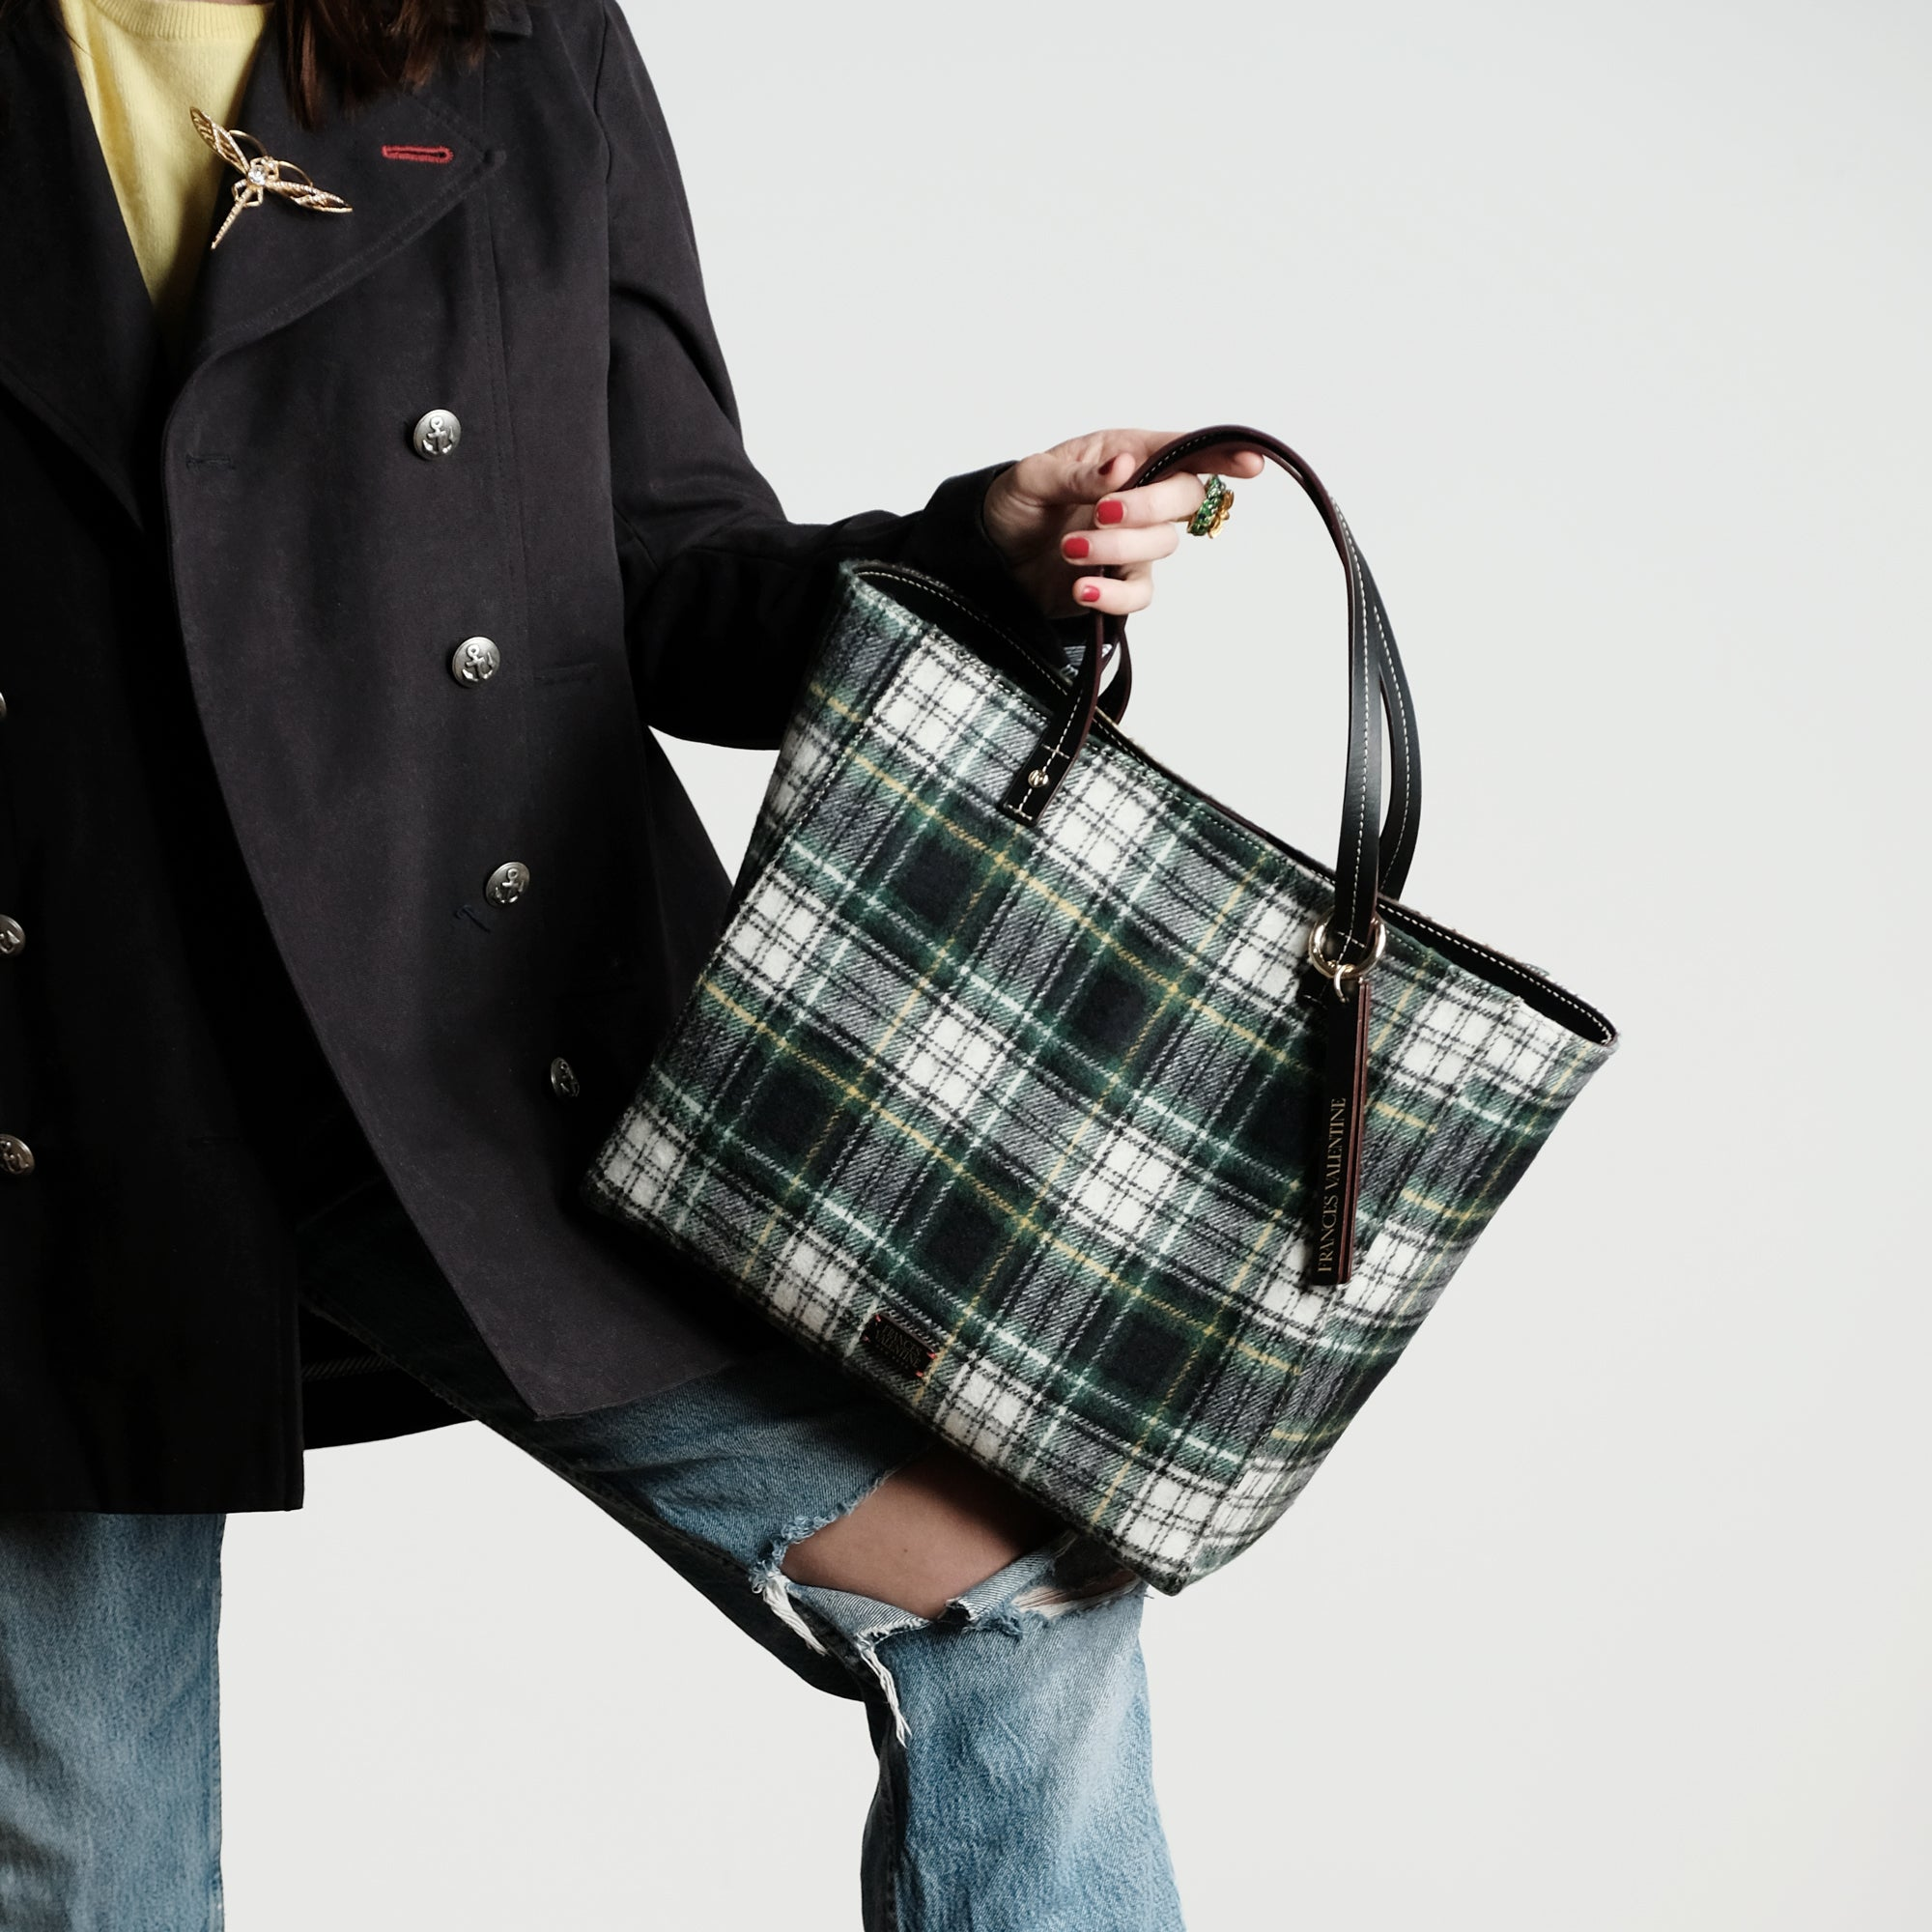 Large Margaret Tote Plaid Wool